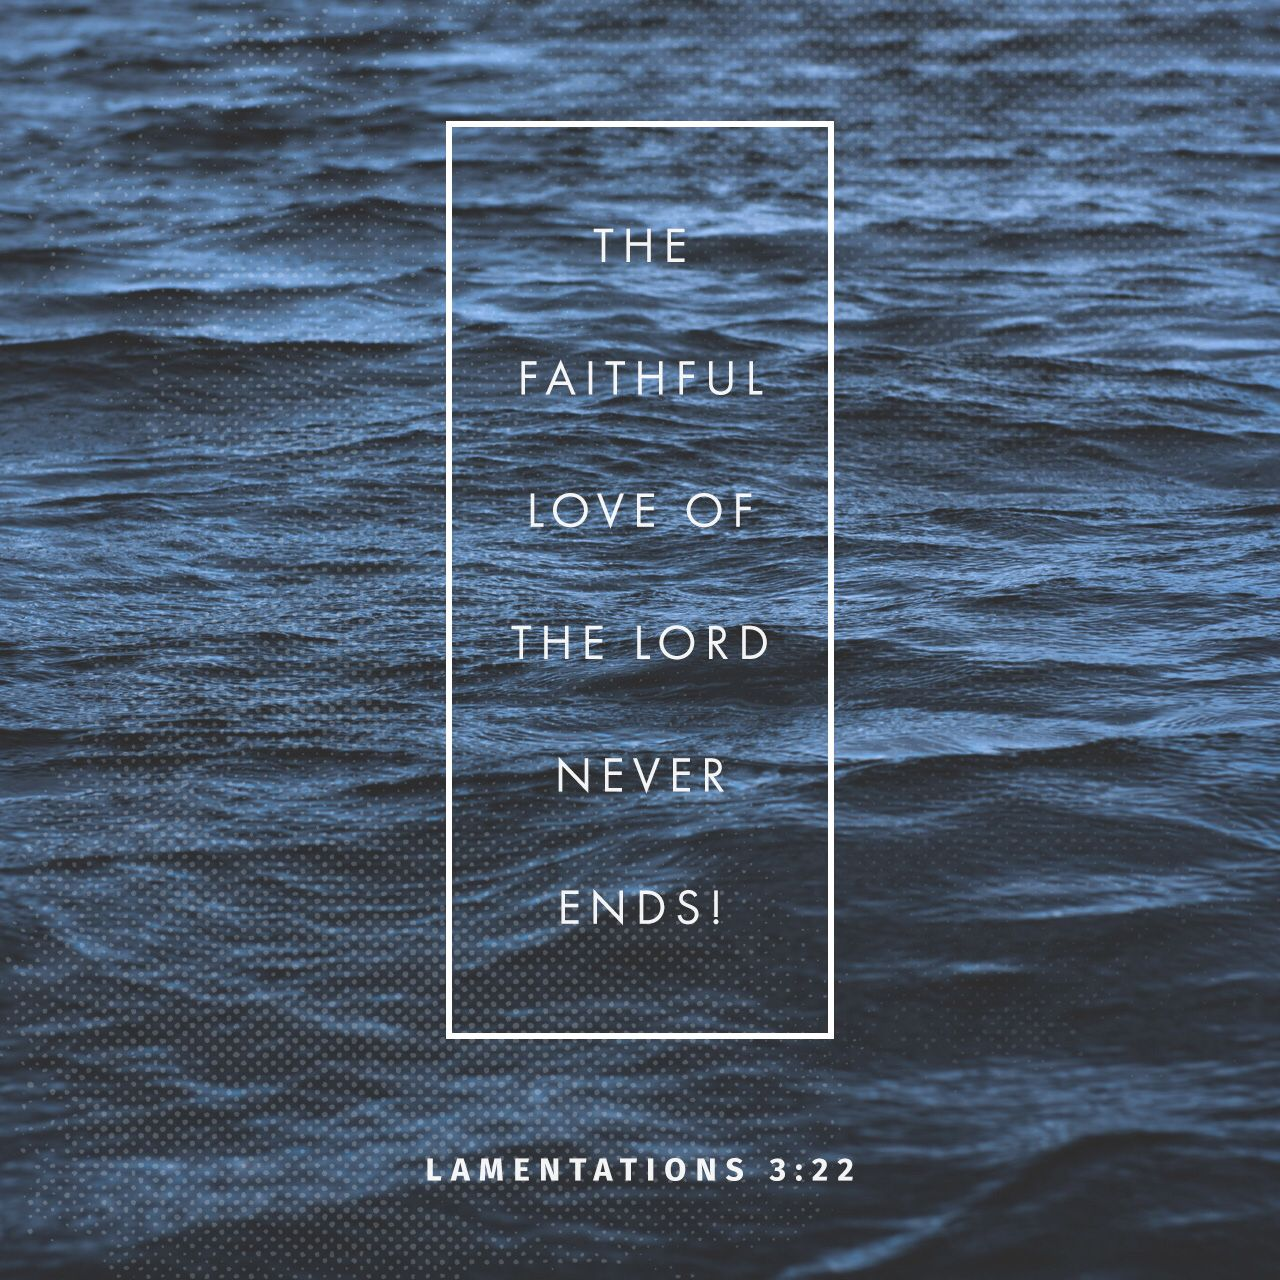 Lamentations the steadfast love of the lord never ceases